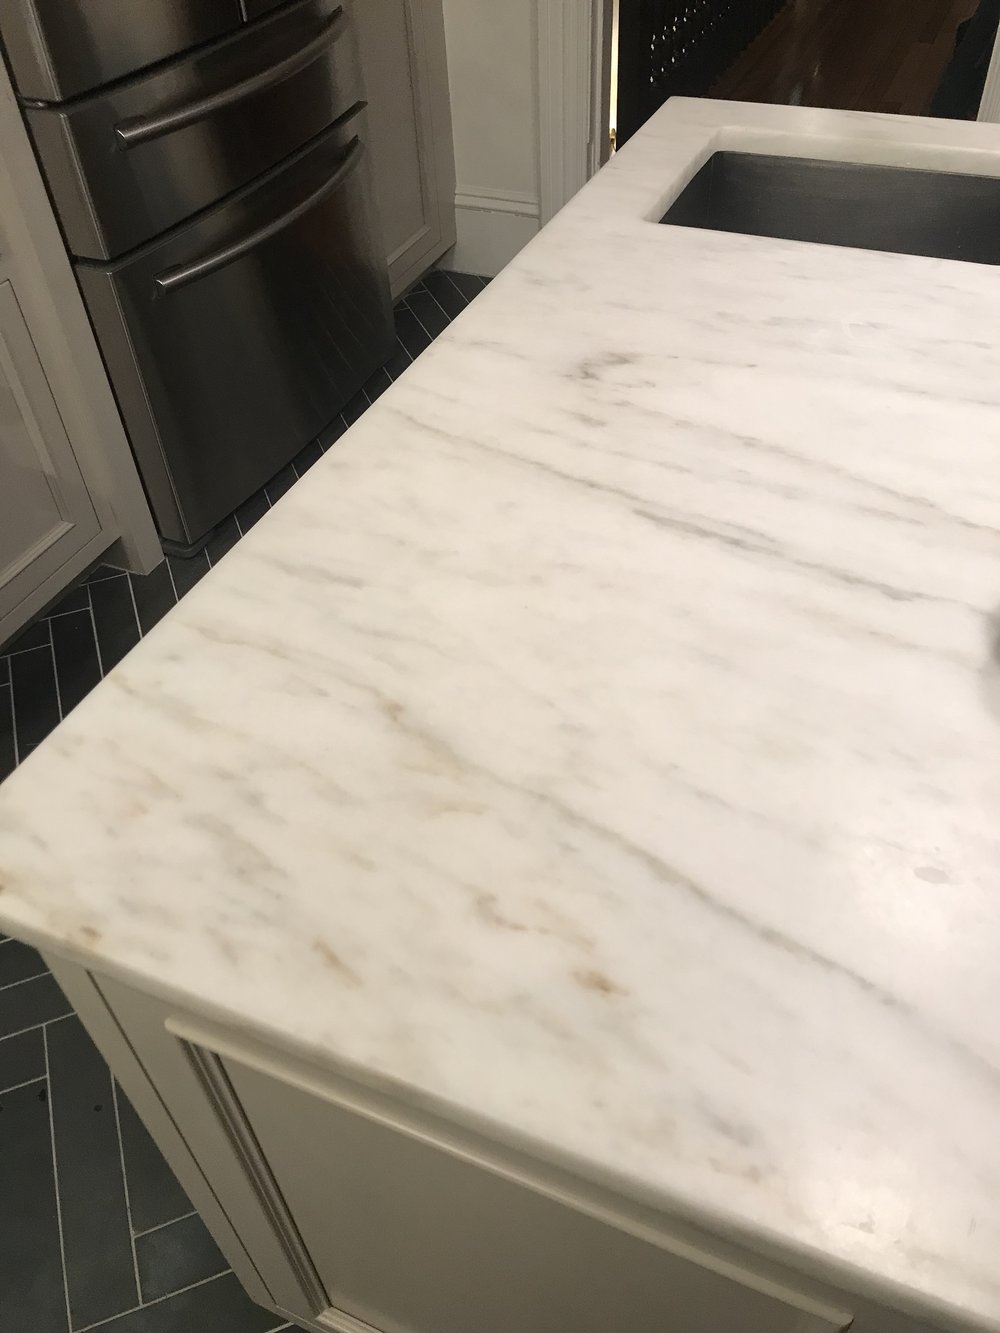 Captivating Anyone Out There Have Honed Marble Countertops And NOT Feel The Same Way I  Do? If Your Experience Has Been Different, What Did You Not Like About ...